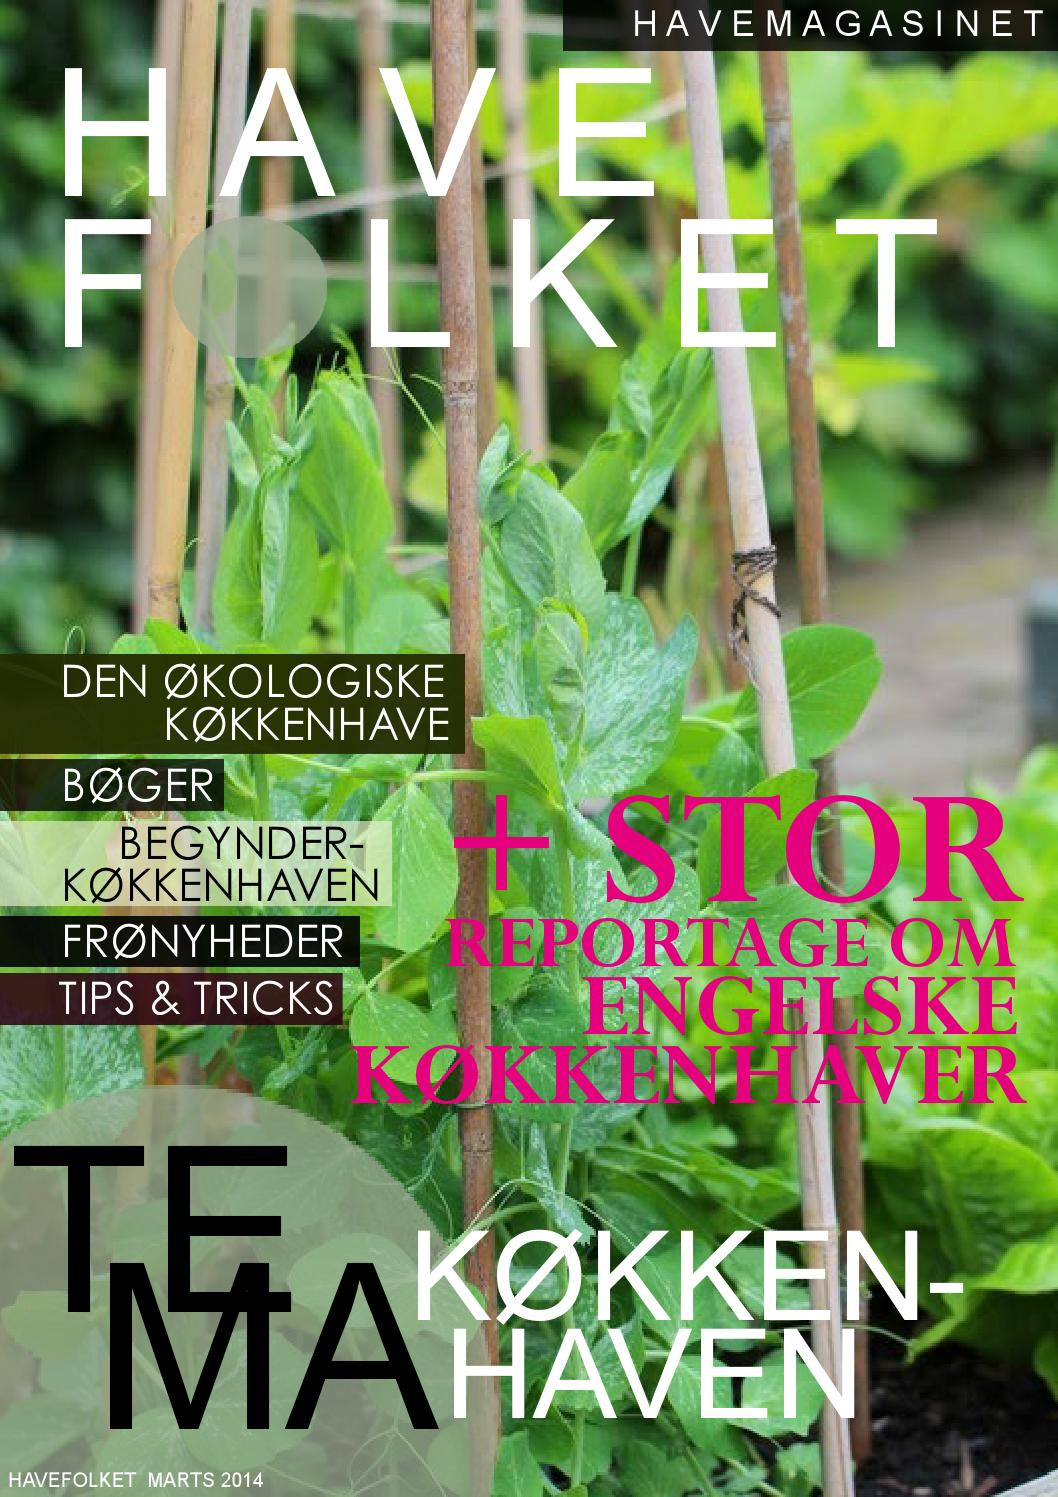 HAVEFOLKET NR 3 2014 by HAVEFOLKET - issuu